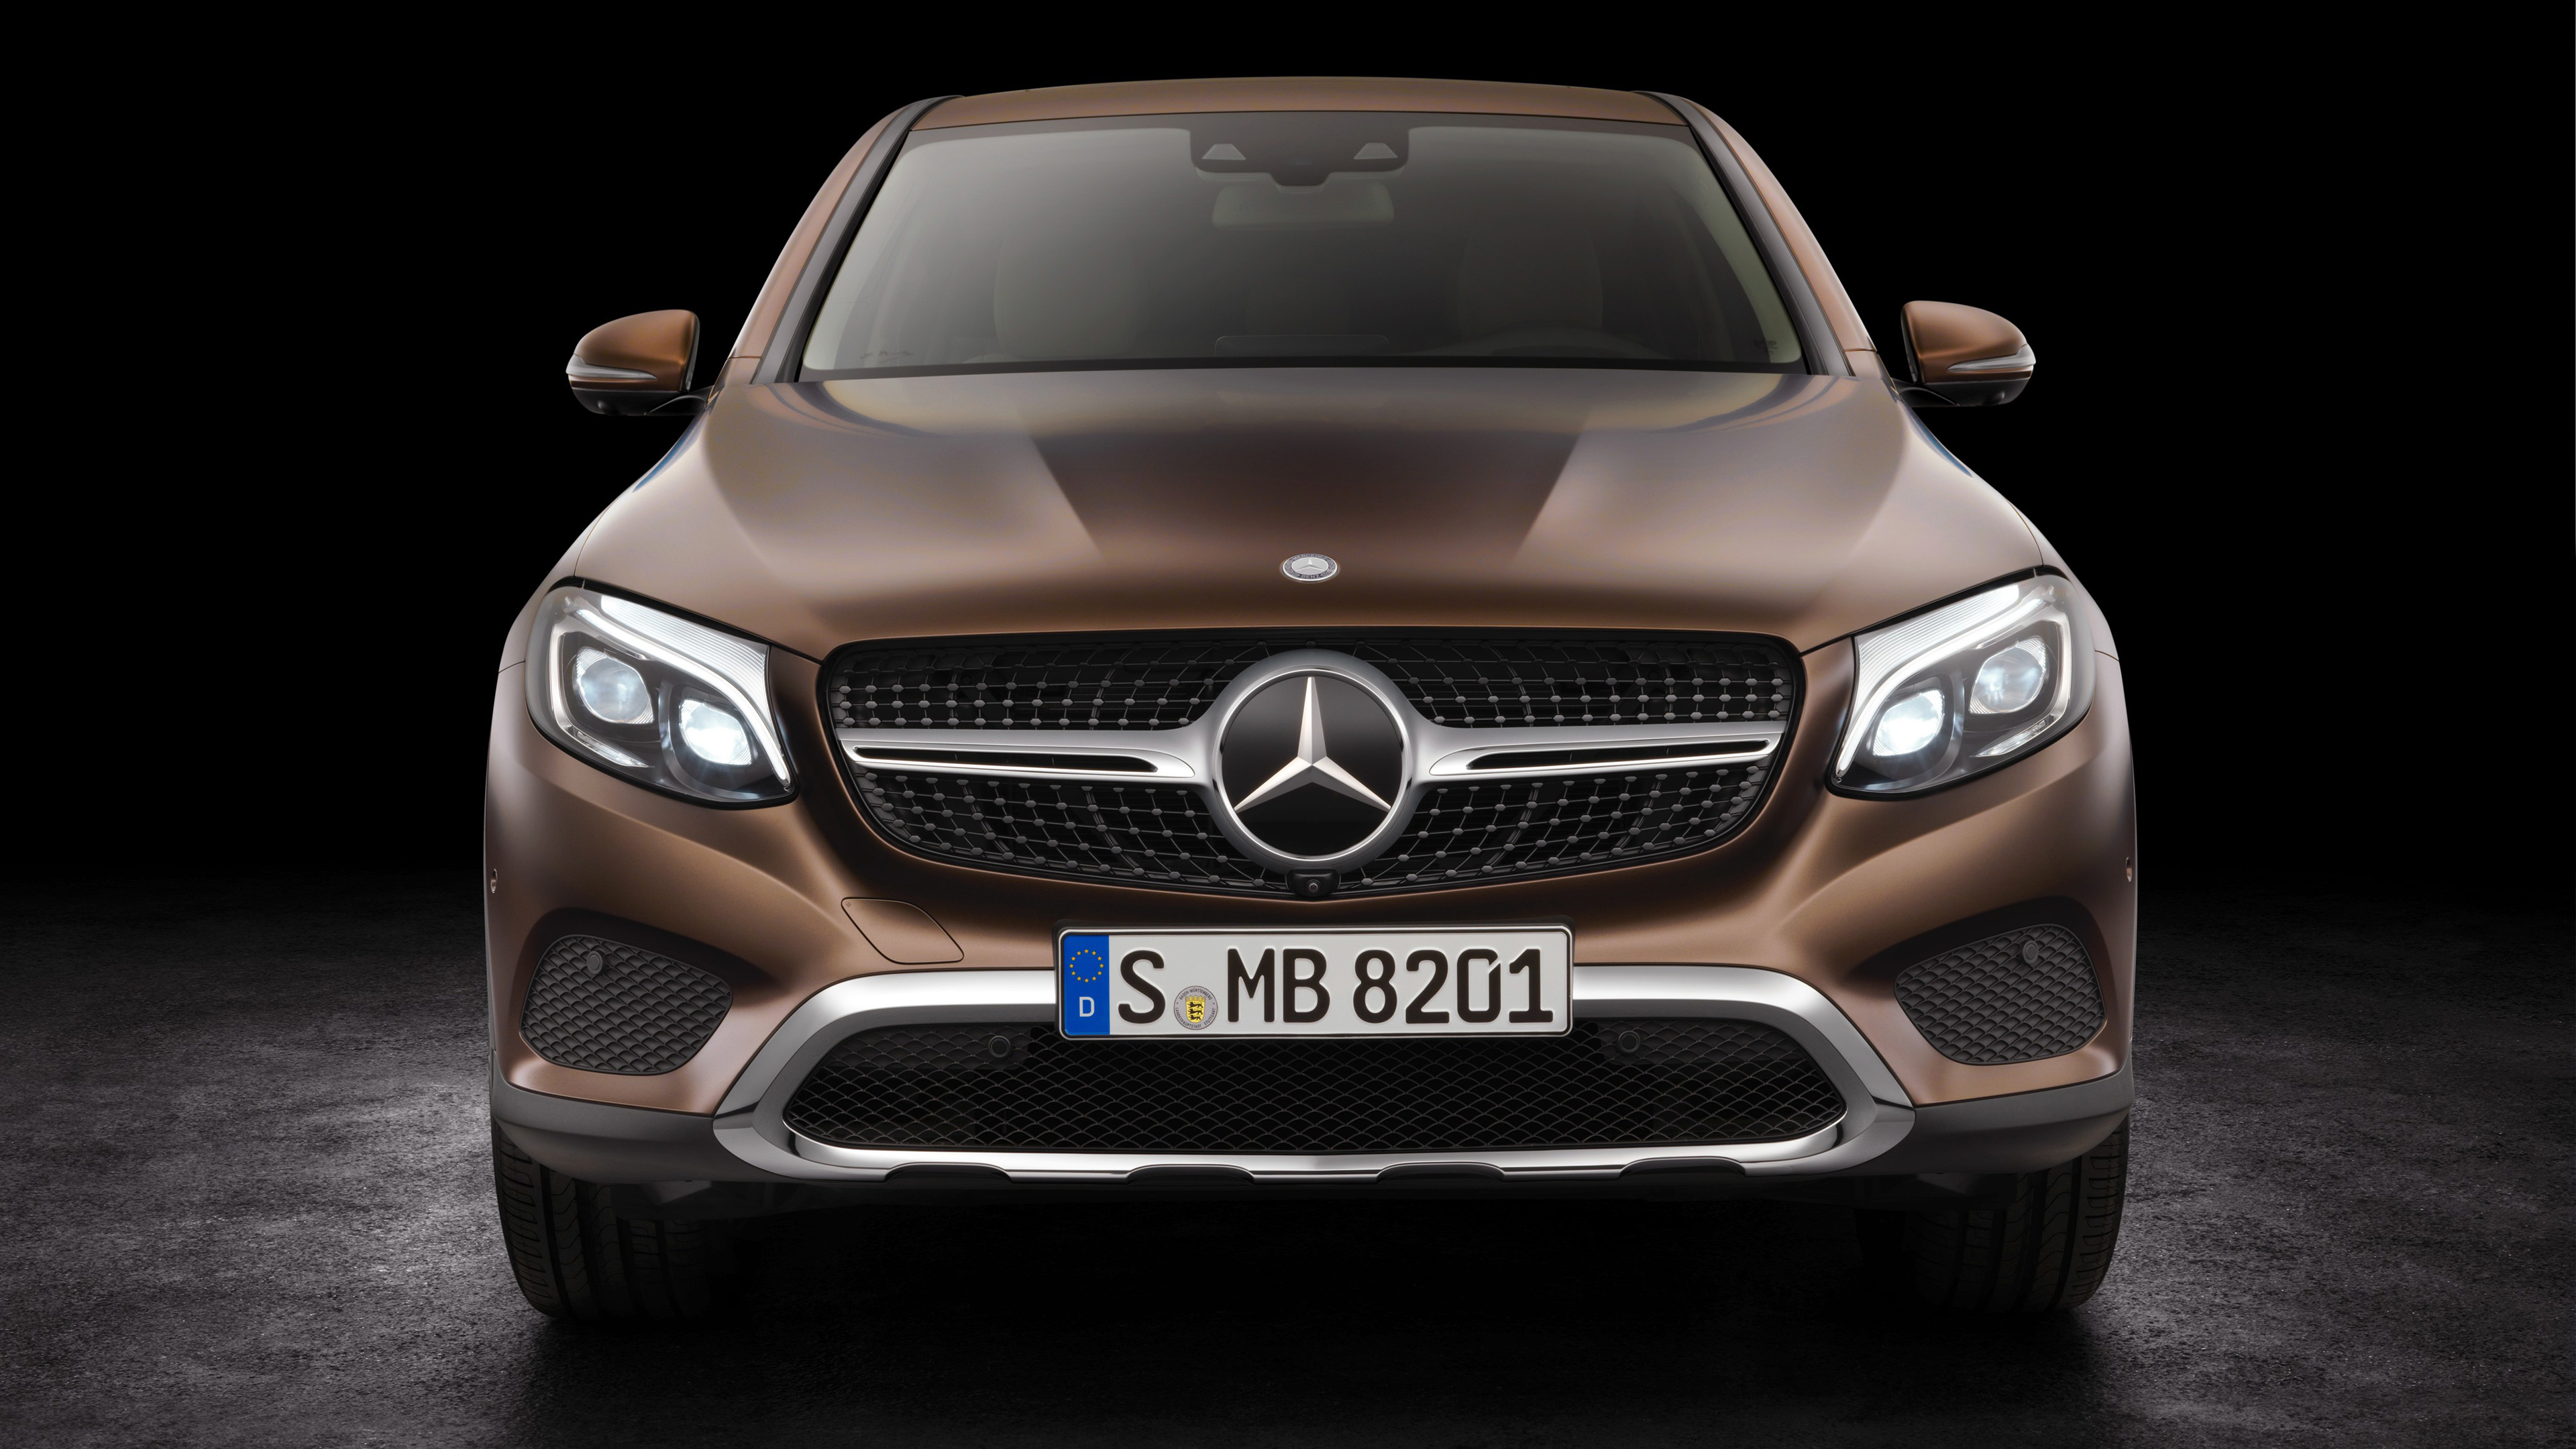 2017 mercedes benz glc coupe shanghai auto show wallpaper hd car wallpapers id 6390 - Shanghai auto show ...